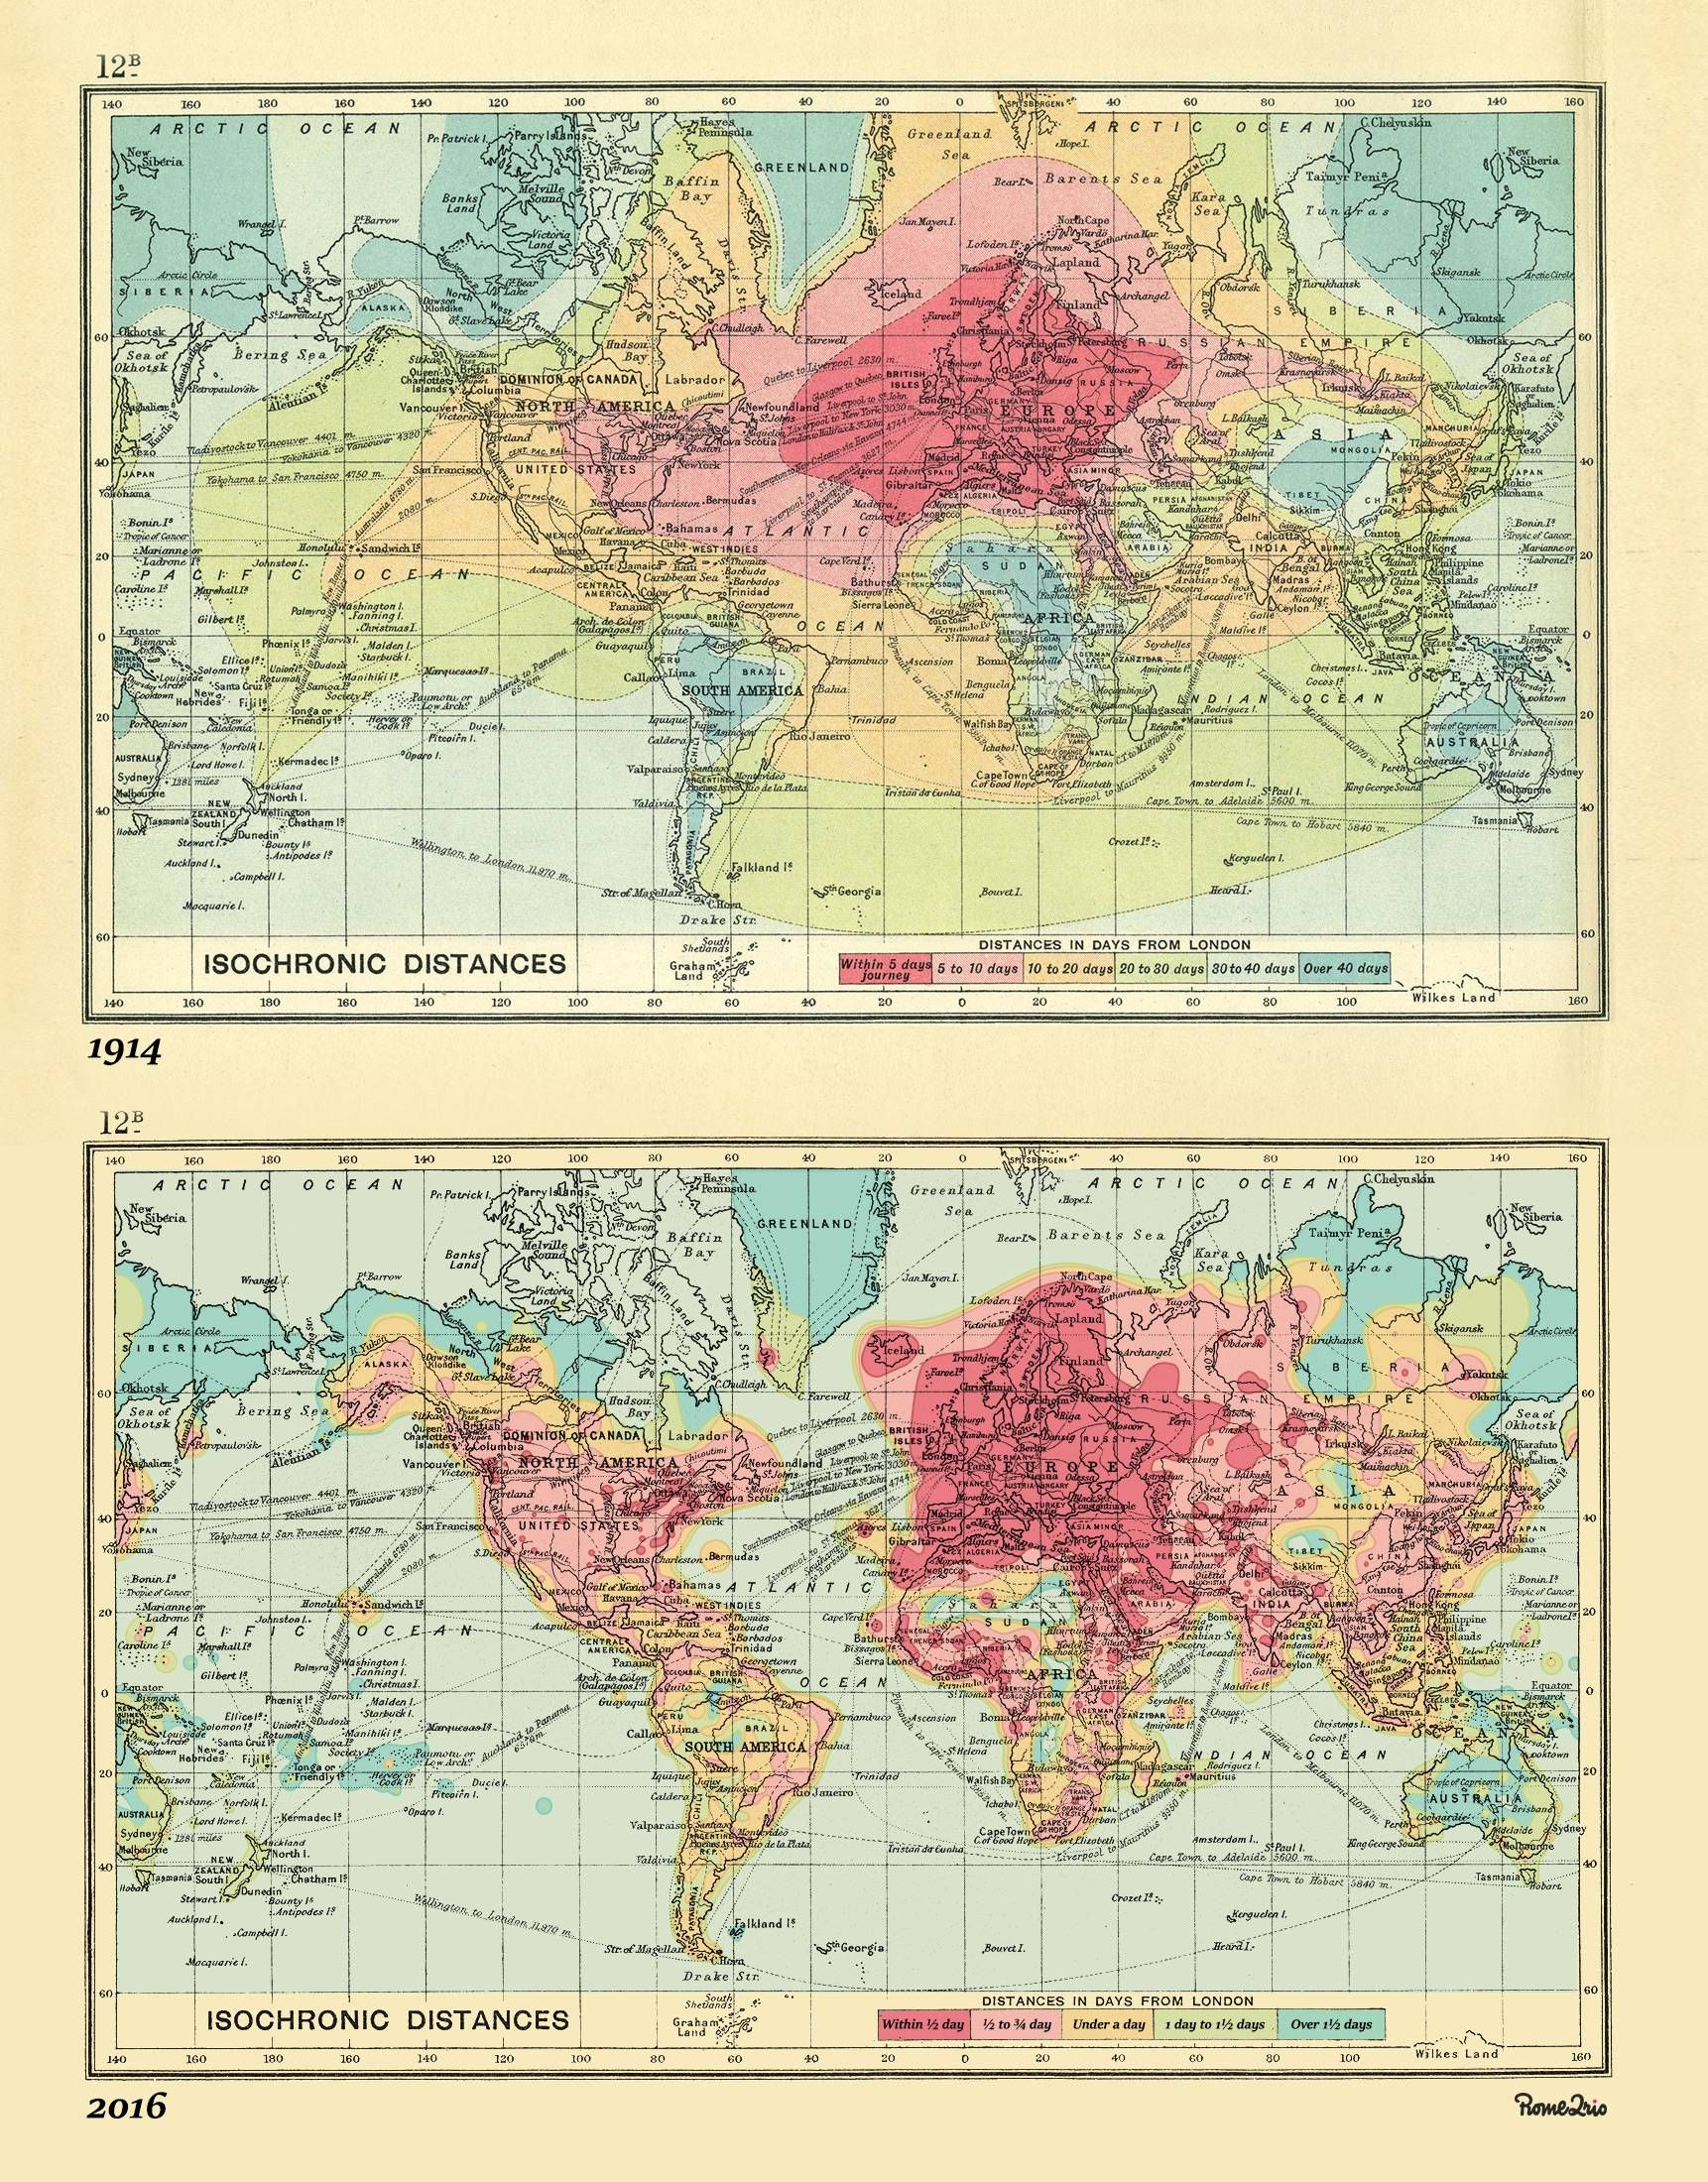 A 2016 version of the 1914 isochronic londonworld travel times map a 2016 version of the 1914 isochronic londonworld travel times map oc by r2r in dataisbeautiful gumiabroncs Choice Image